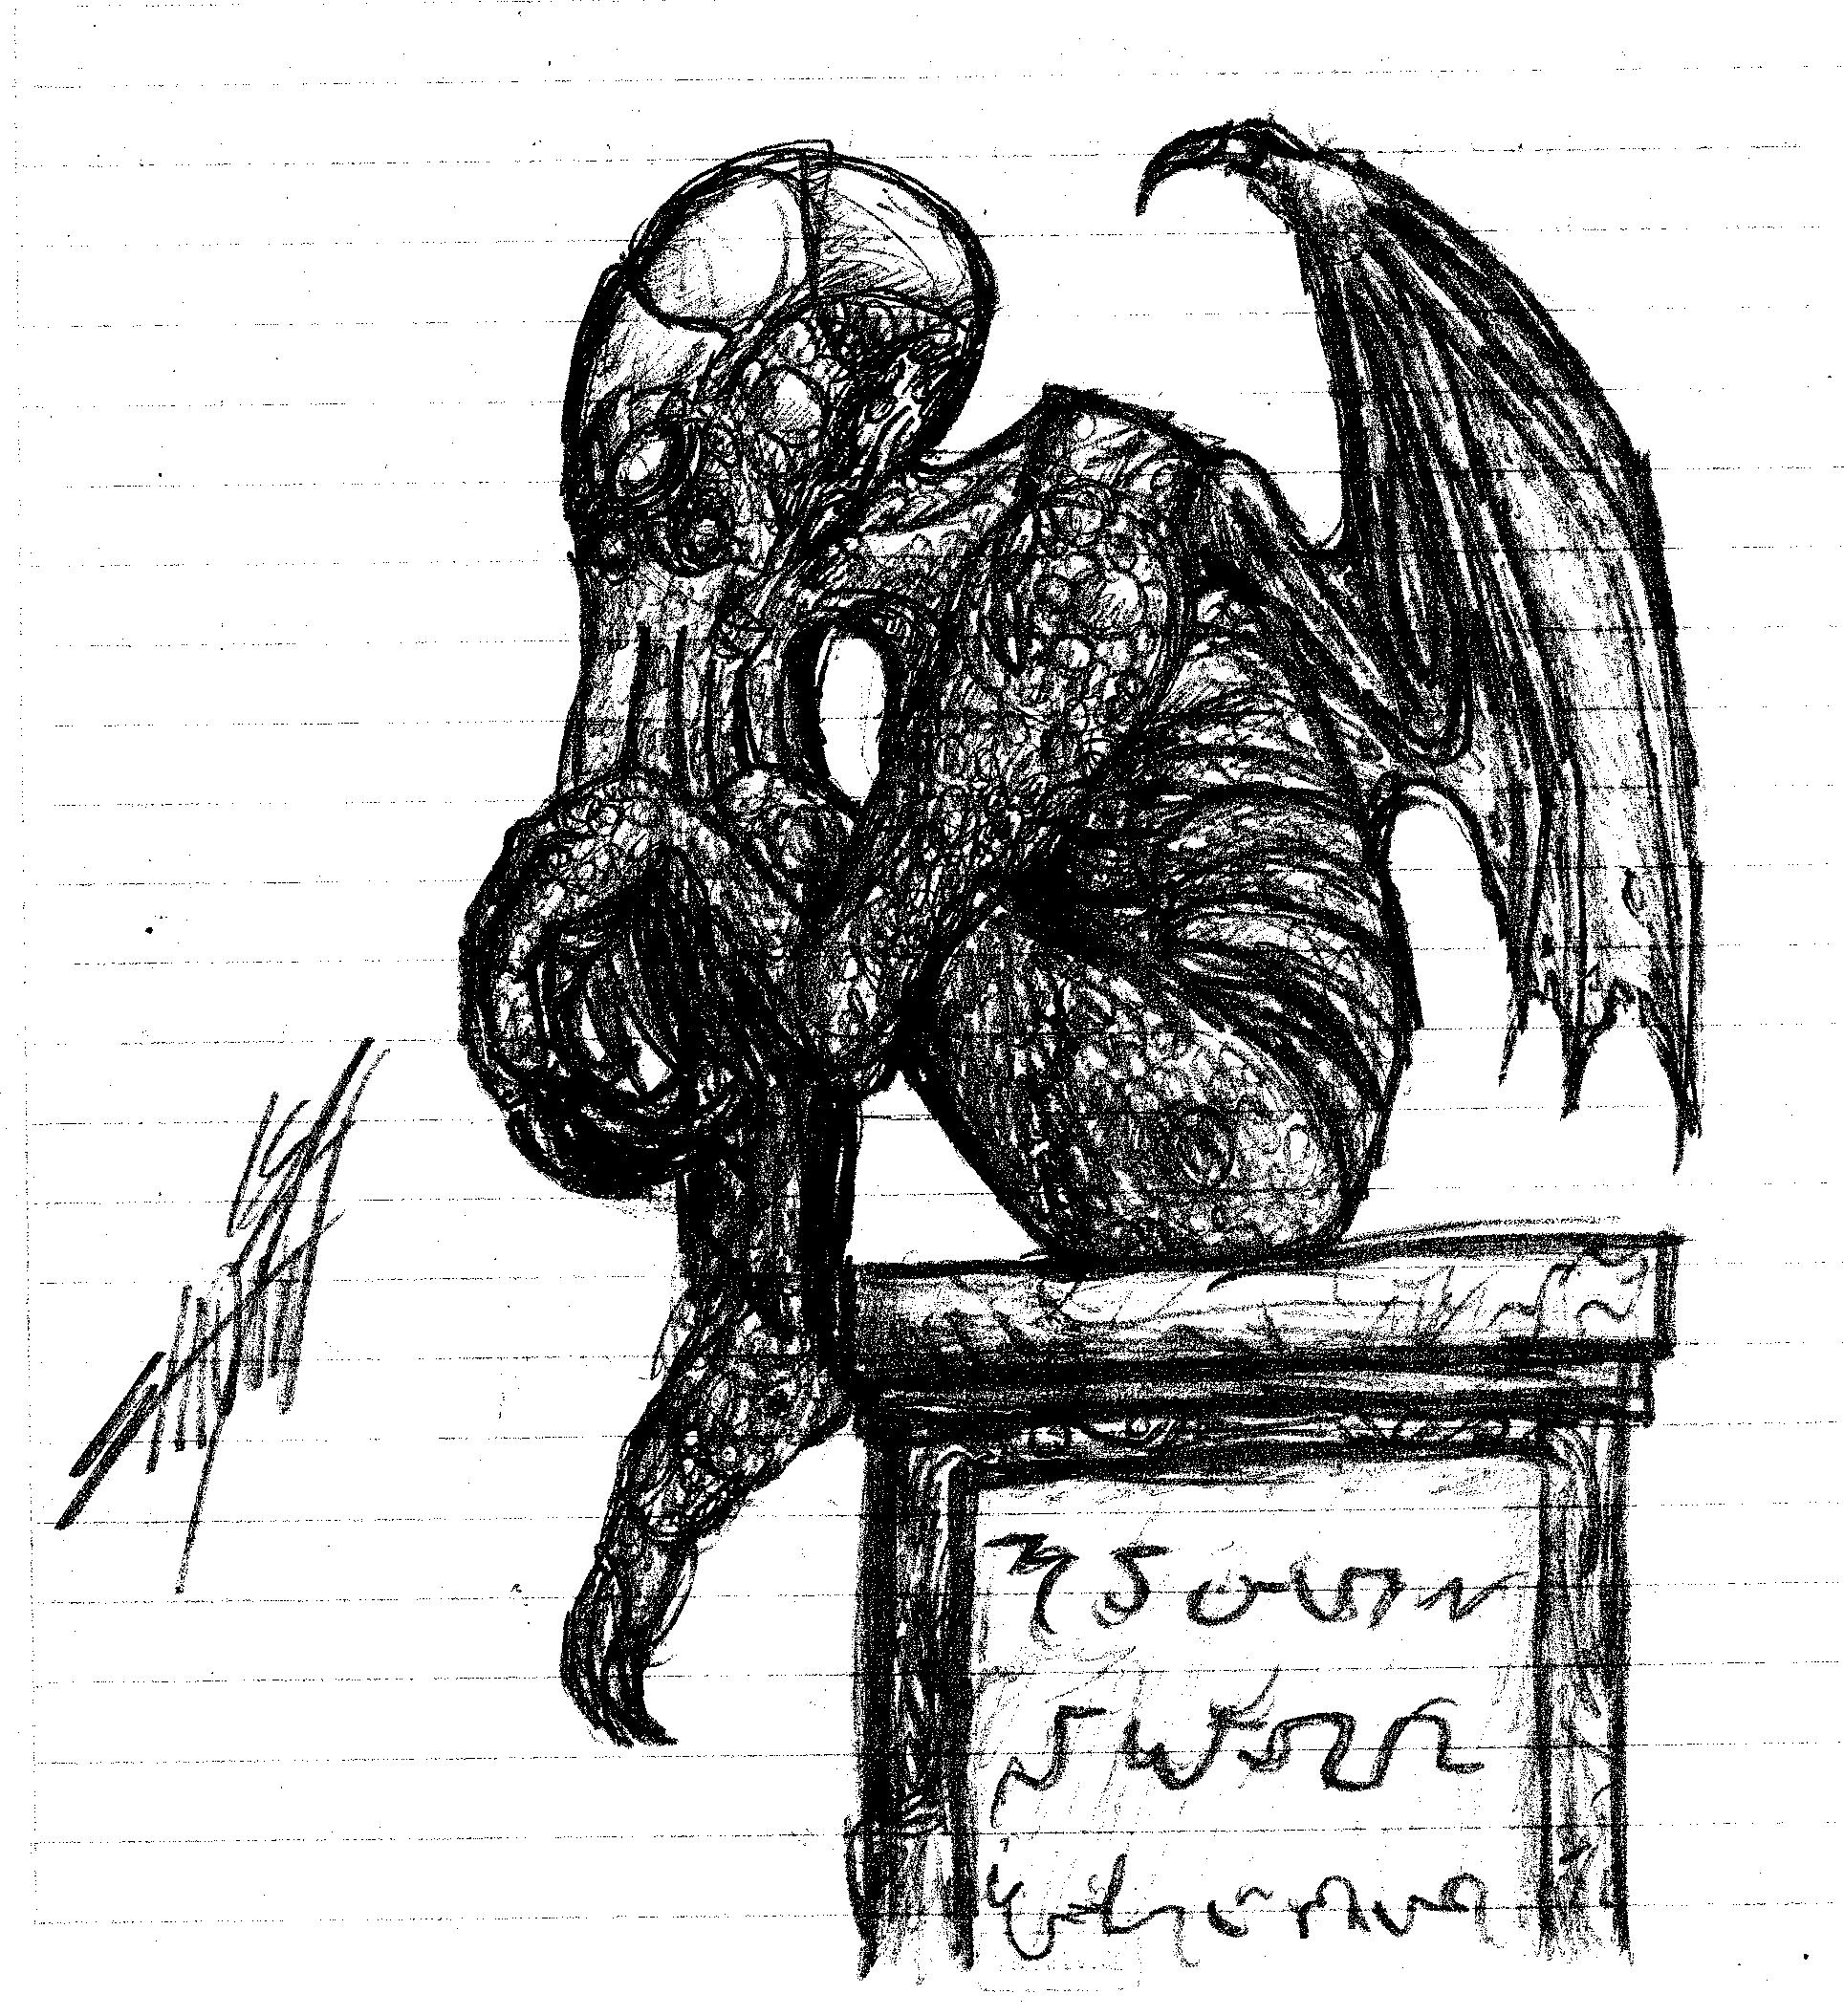 The Sketch of Cthulhu